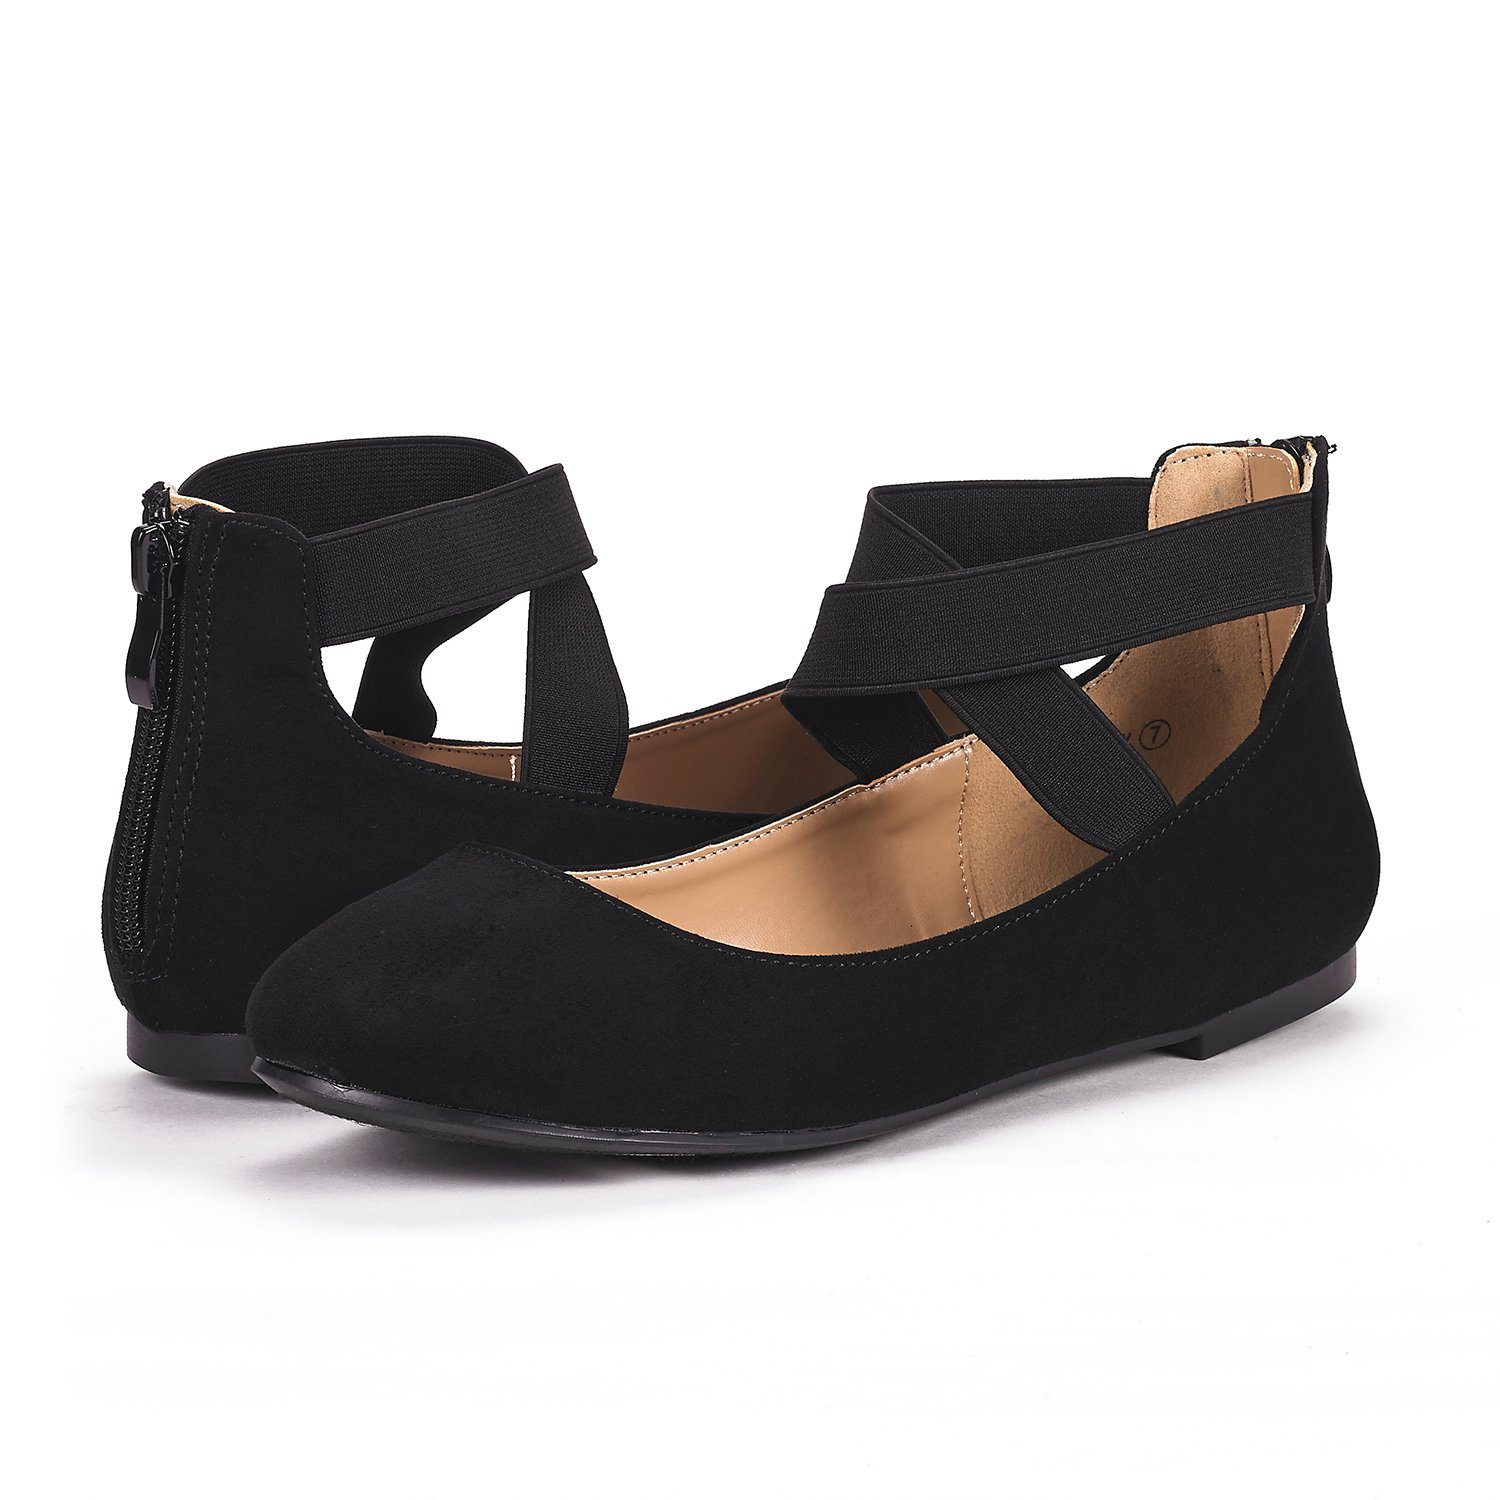 DREAM PAIRS Women's Sole_Stretchy Black Fashion Elastic Ankle Straps Flats Shoes Size 9 M US by DREAM PAIRS (Image #2)